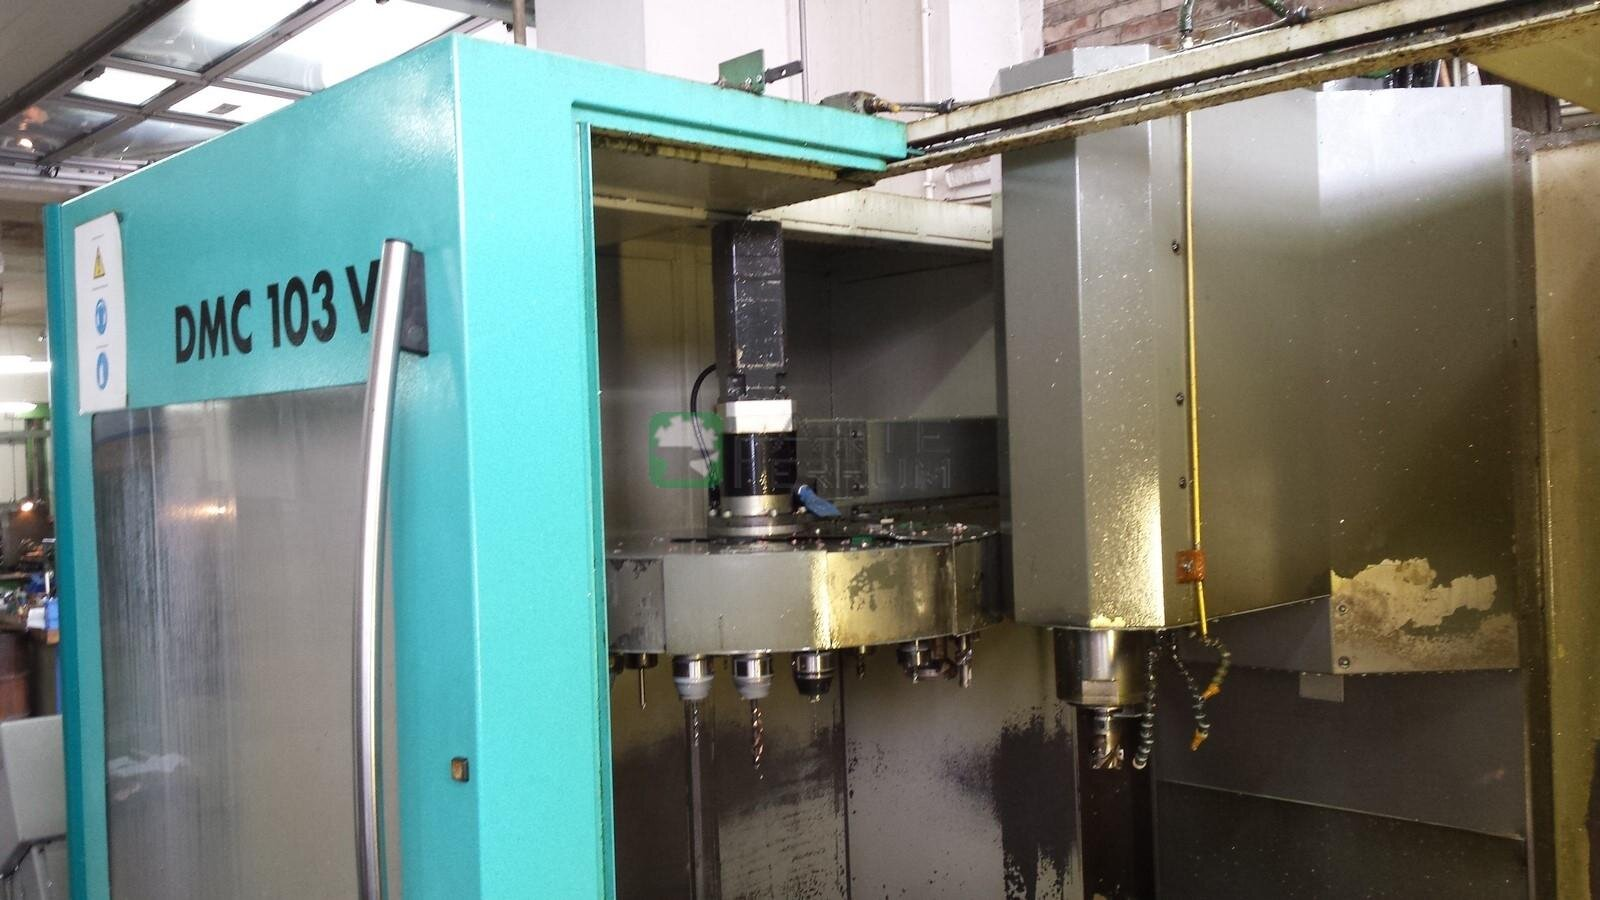 /en/deckel-maho-dmc-103v-3-axis-vertical-machining-center-99-detail